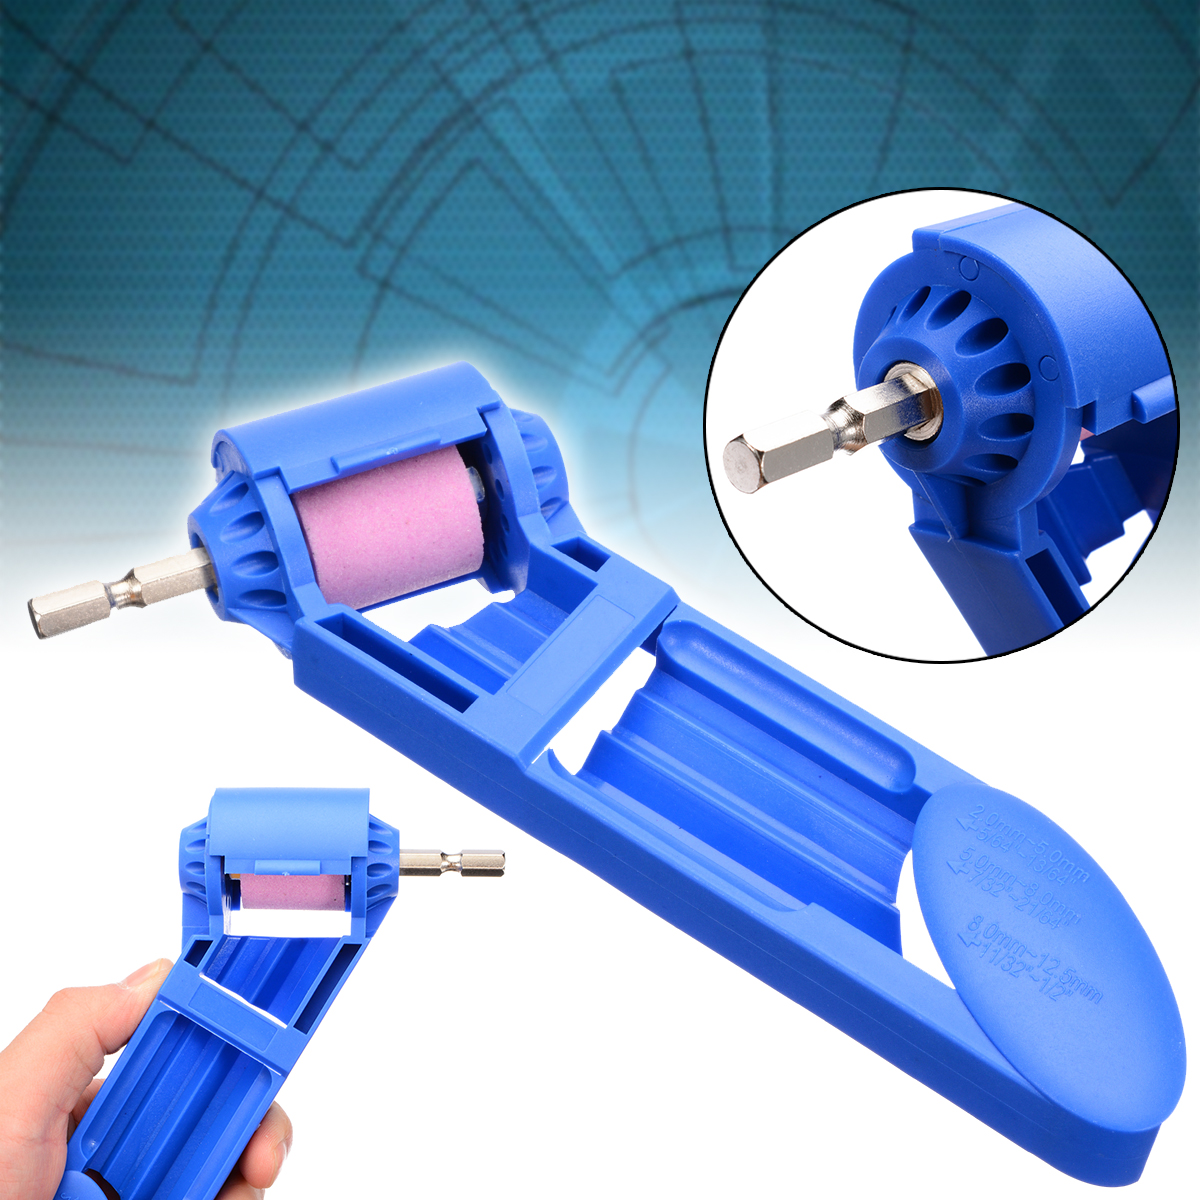 Durable Drill Bit Grinder ABS Corundum Grinding Wheel Drill Bit Sharpener Electric Titanium Drilling Powered Tool in Grinding Machine from Tools